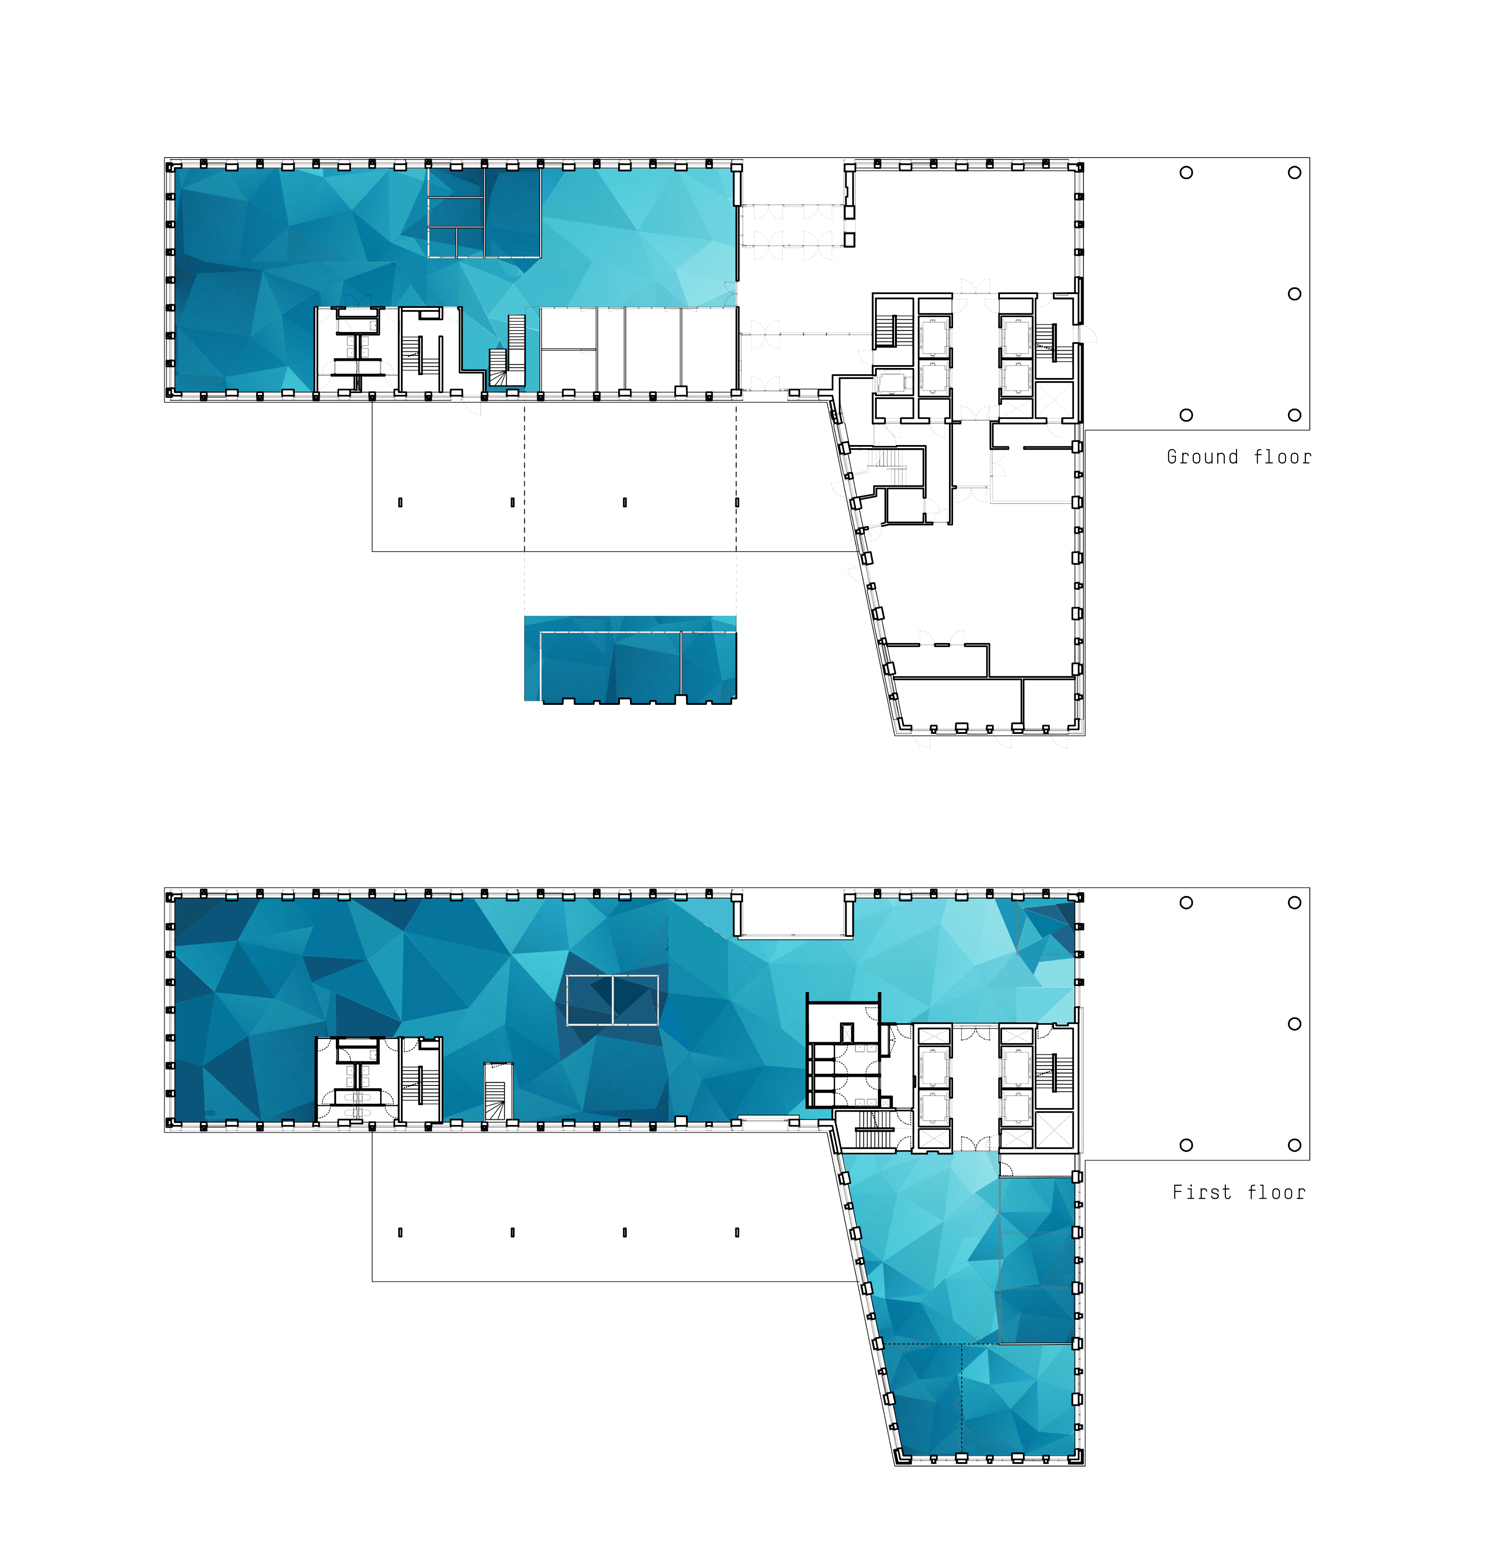 Colourful floors sketches at GRI Amsterdam from Akka Architects